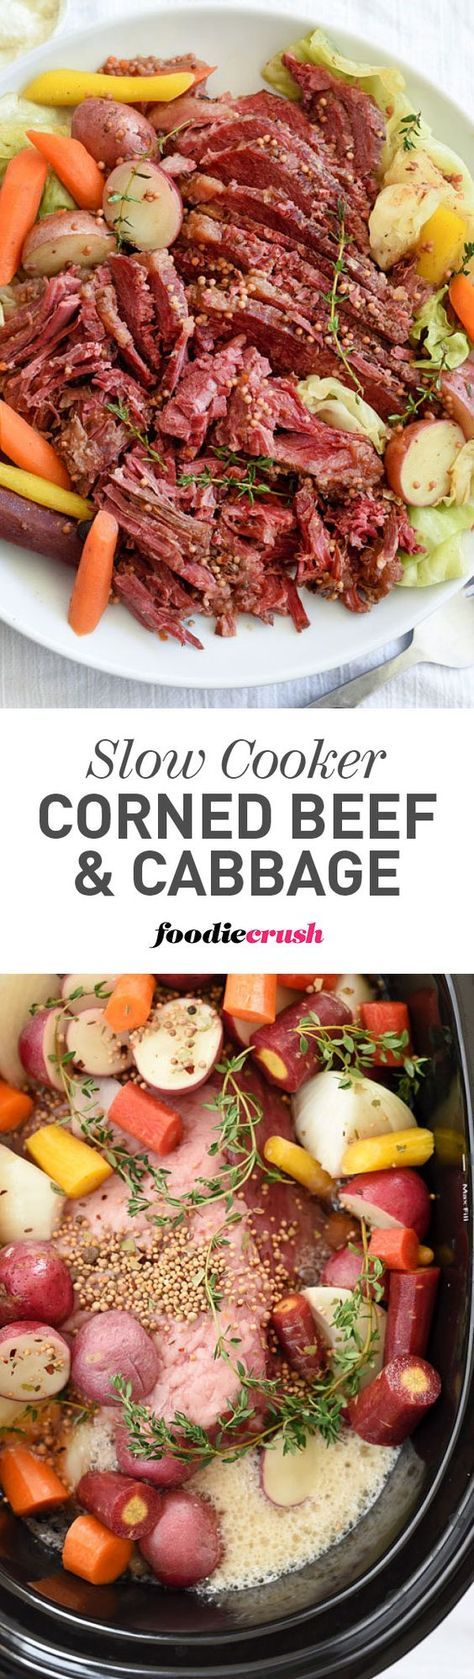 This slow cooker corned beef creates tender, fall-apart chunks of beef thanks to braising in beer and vegetables for an unbelievably easy one-pot dinner   http://foodiecrush.com #cornedbeef #stpatricksday #crockpot